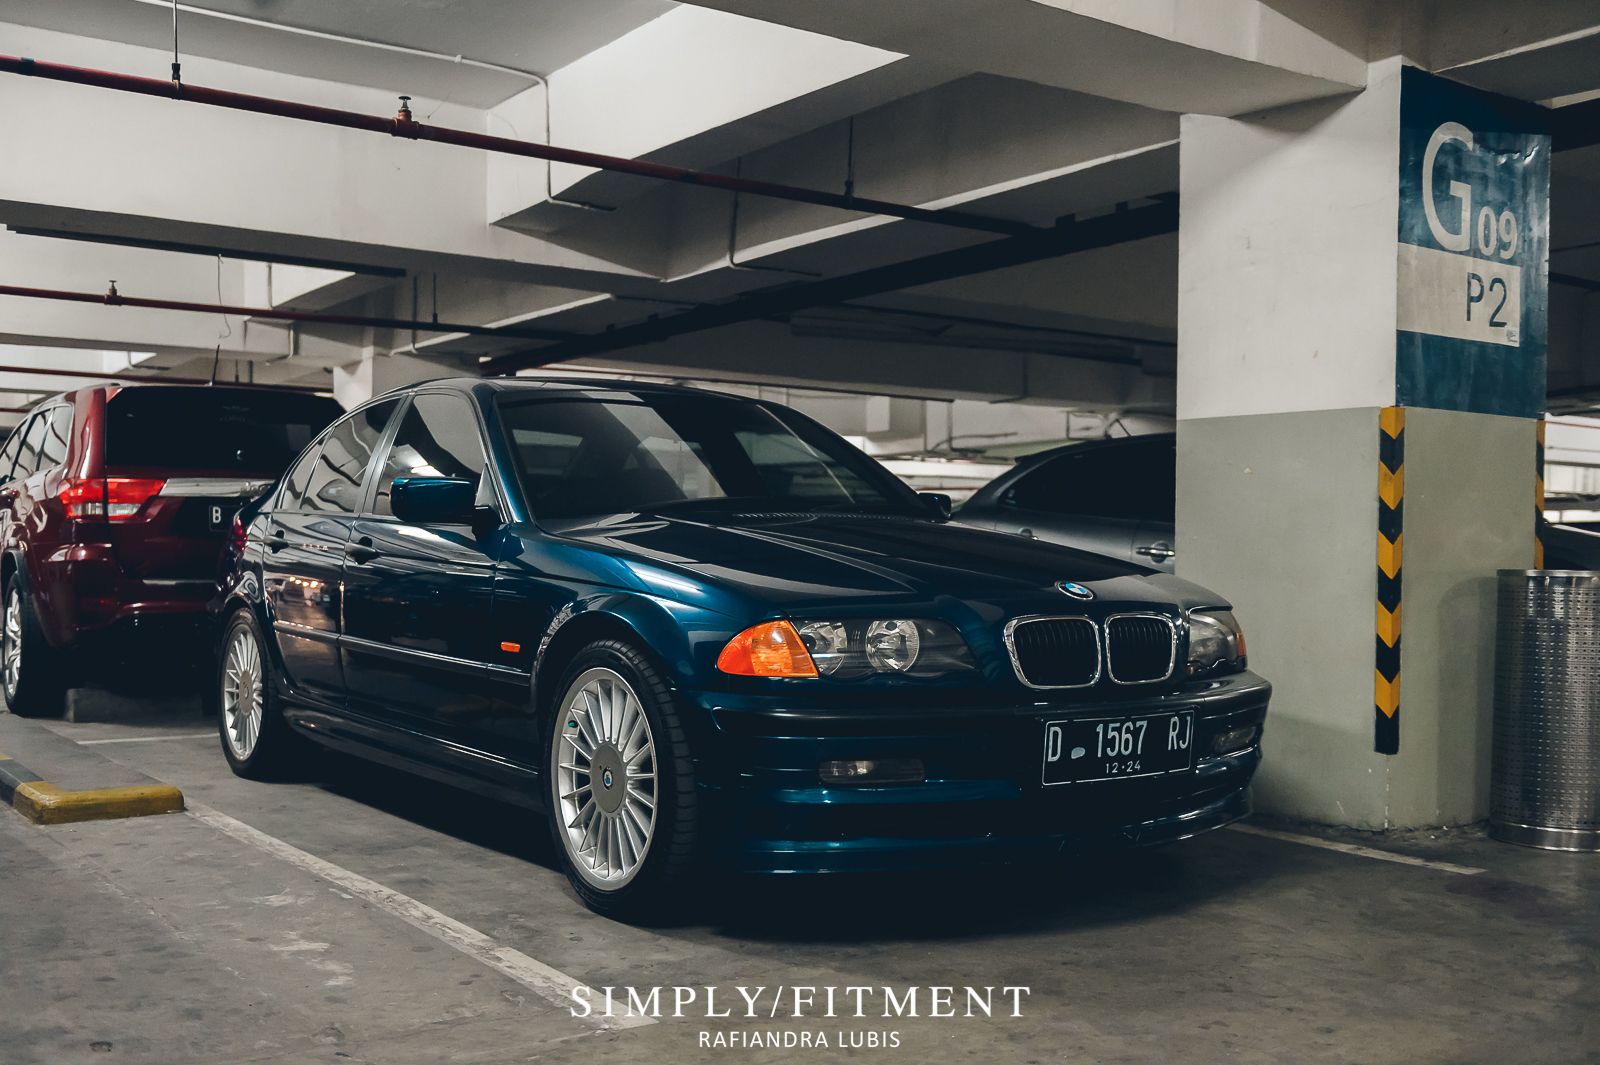 LOWFITMENTDAY 13 DAY 1 - 4 SEPTEMBER 2020